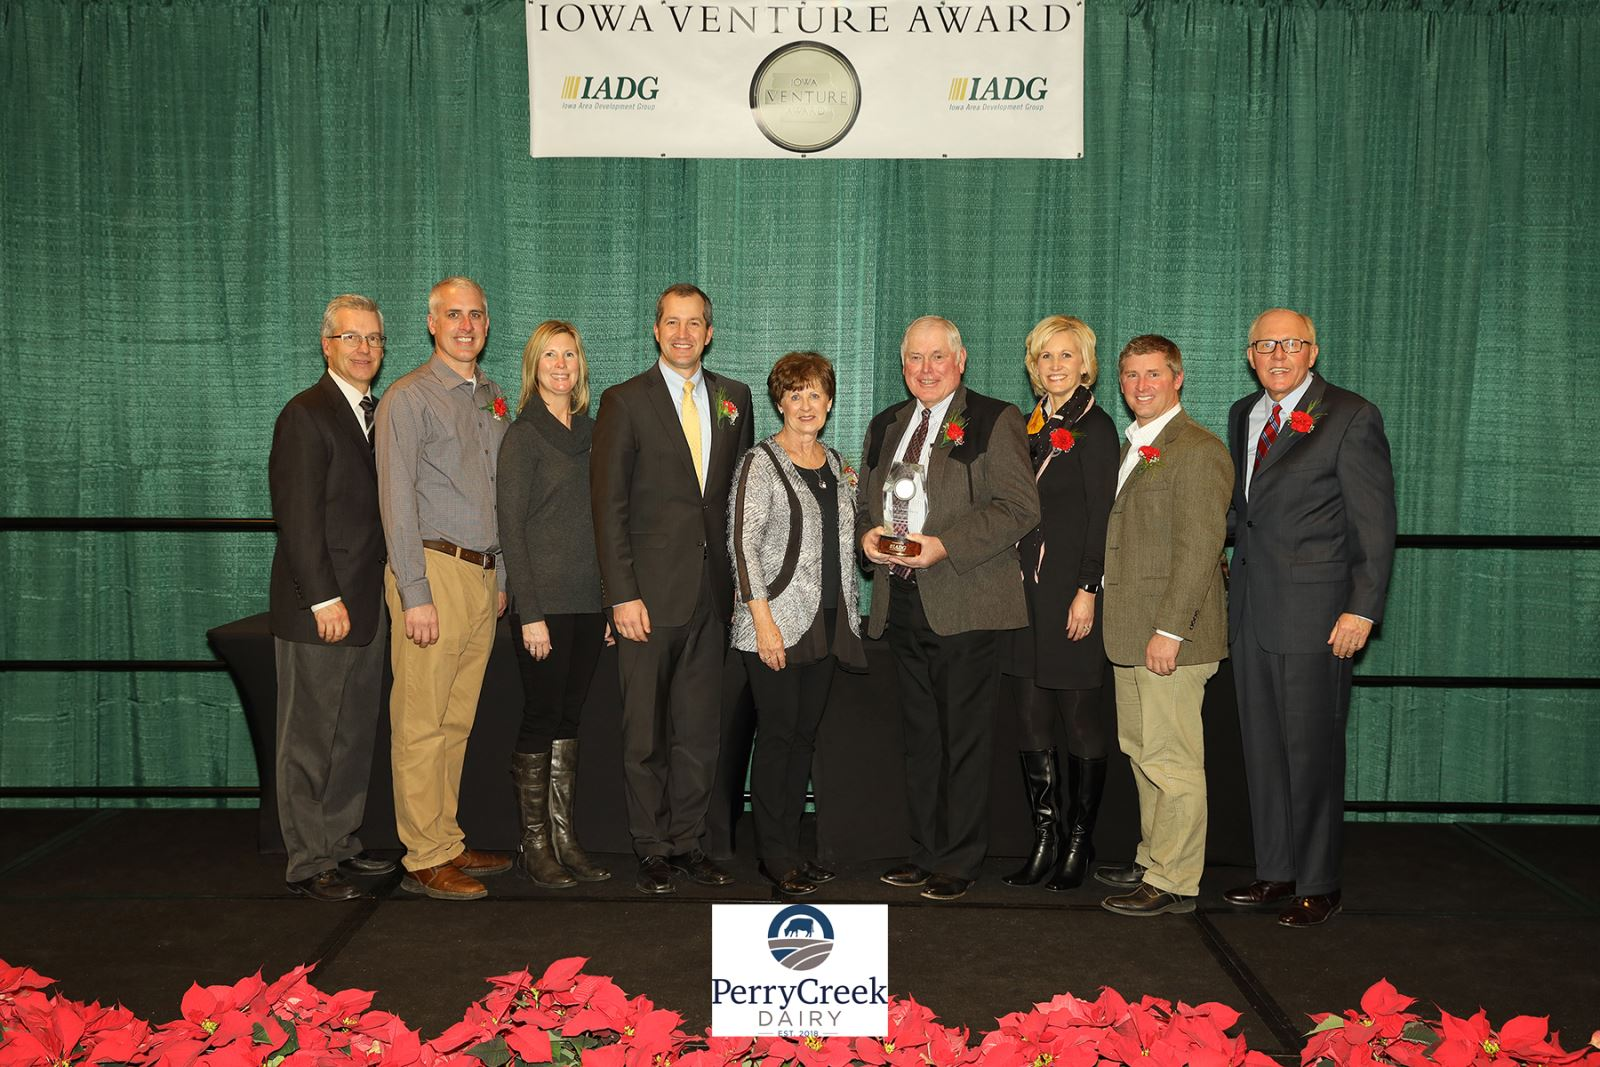 Perry Creek Dairy Receives 2018 Iowa Venture Award